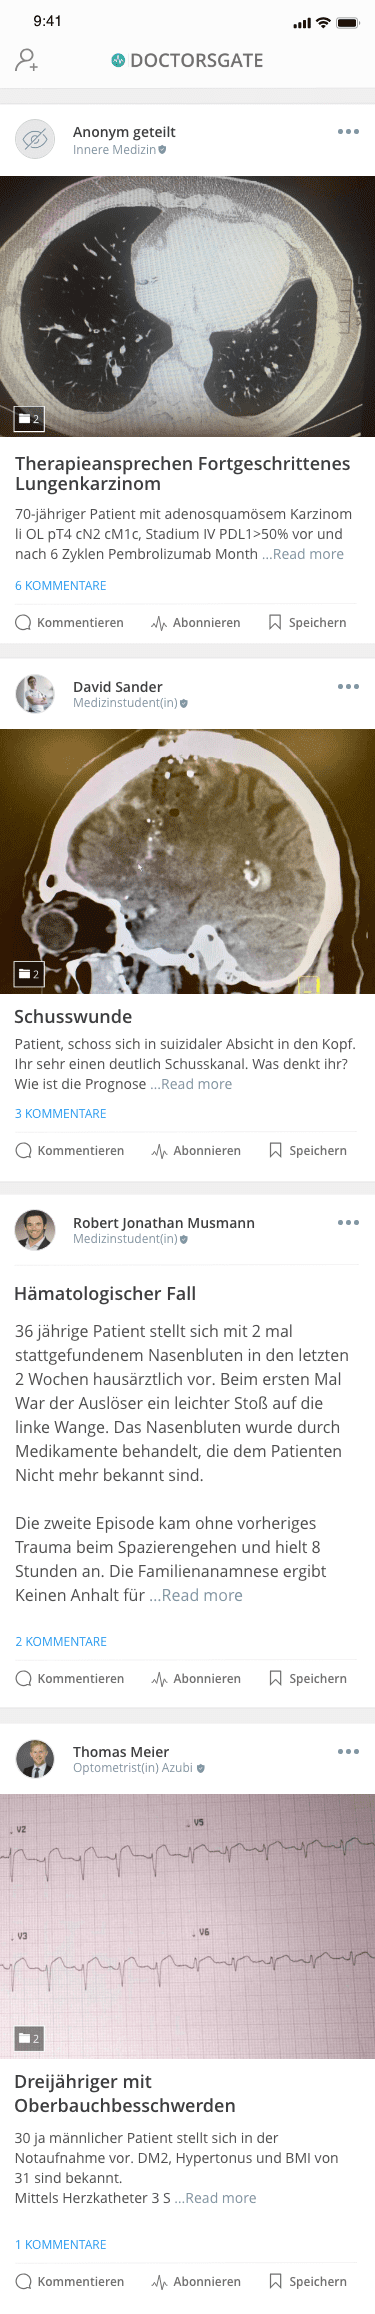 Doctorsgate App Slider Home Newsfeed Medical Cases